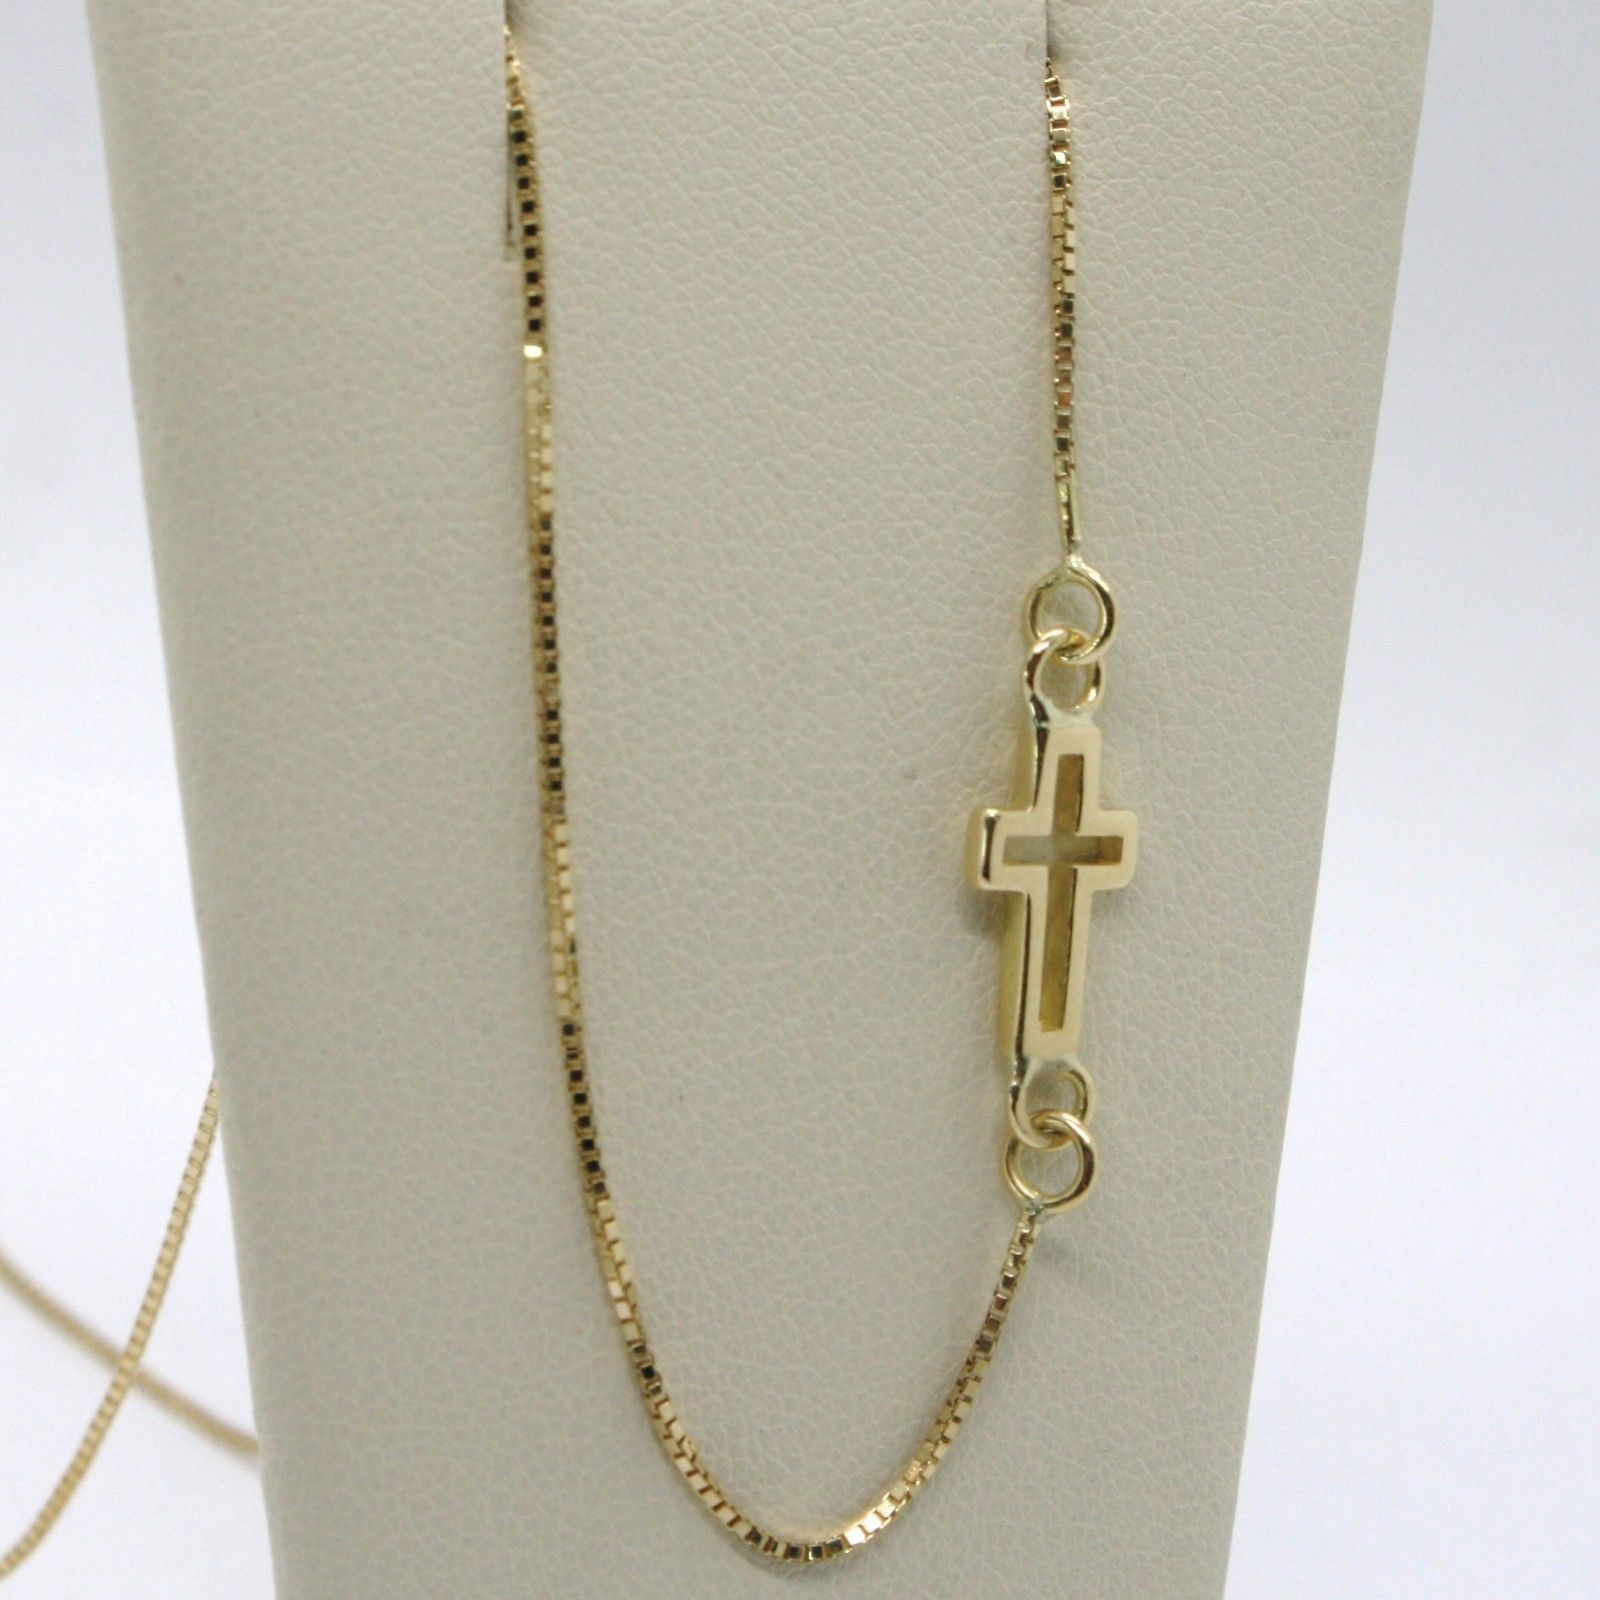 SOLID 18K YELLOW GOLD NECKLACE, VENETIAN CHAIN, SQUARE CROSS, 38 CM, ITALY MADE